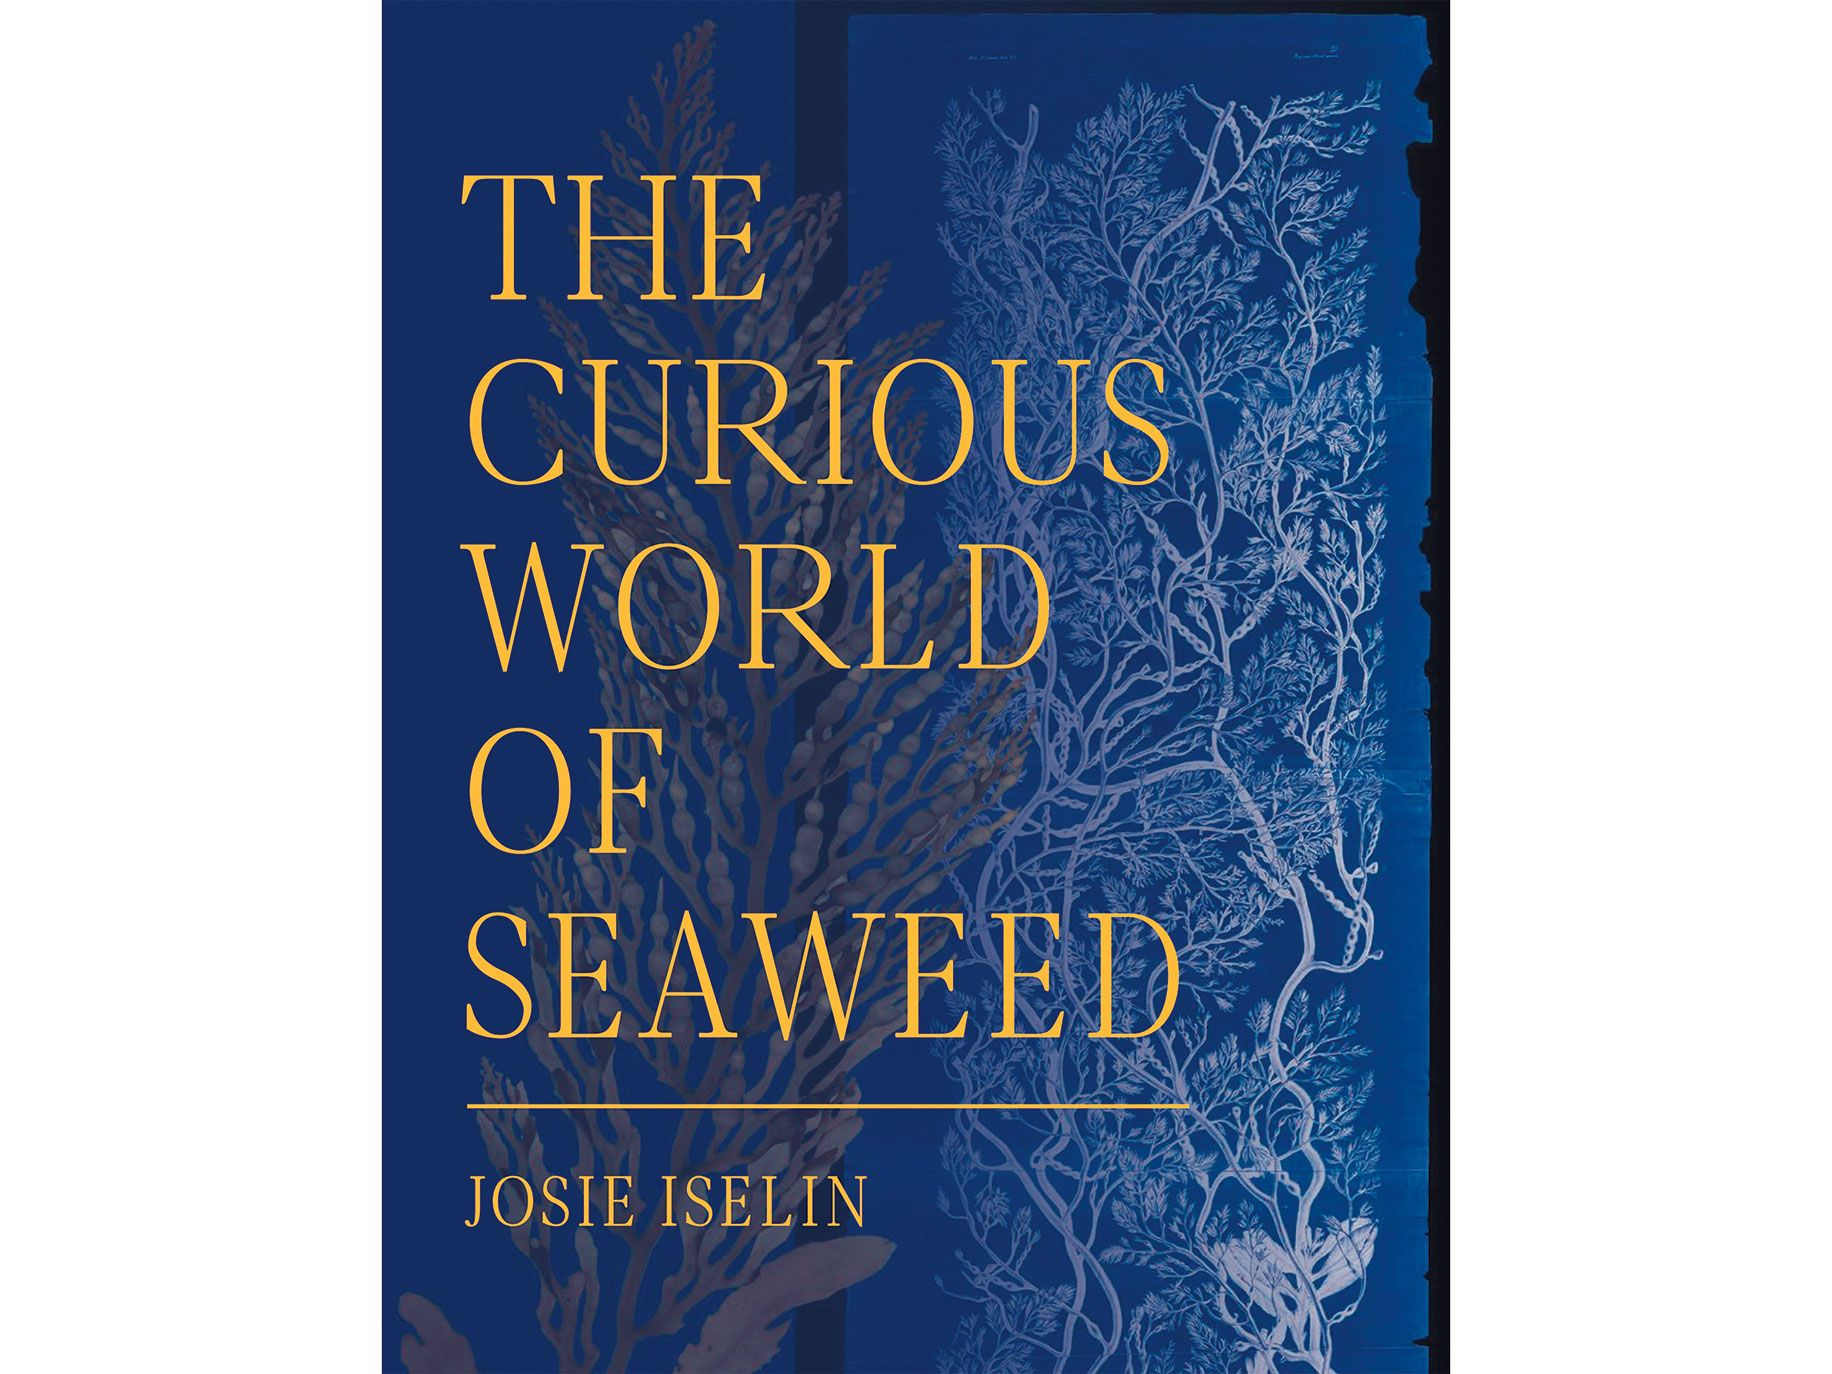 The Curious World of Seaweed, by Josie Iselin (Heyday, 256 pages, $35).